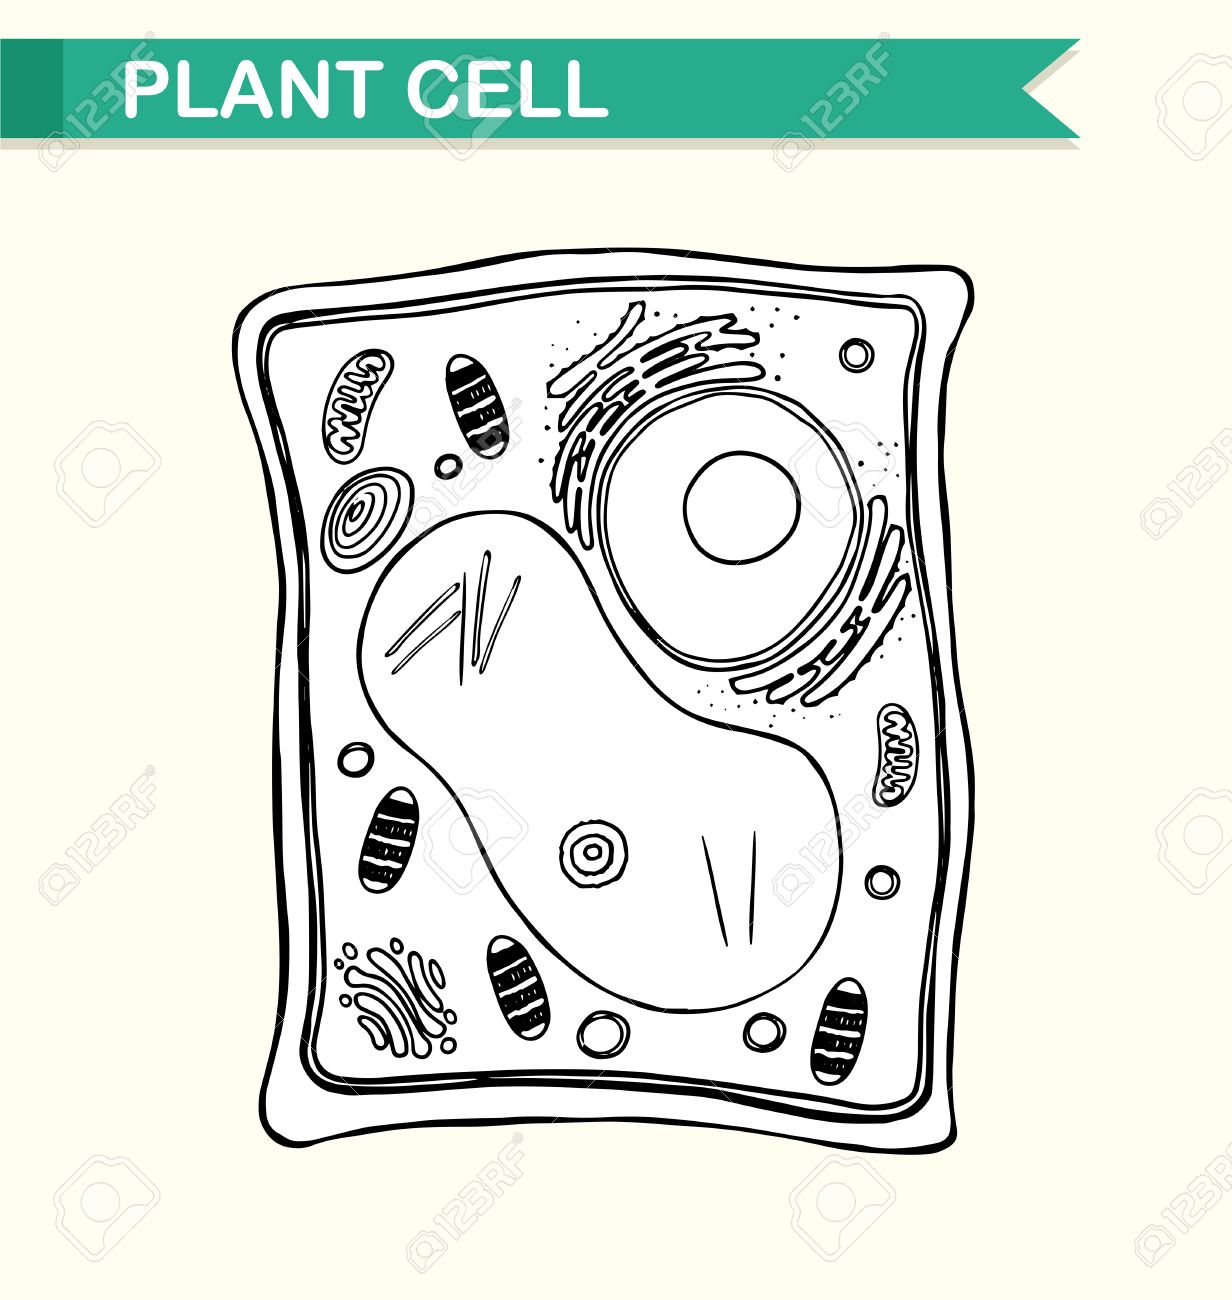 Black And White Cell Diagram Modern Design Of Wiring Prokaryotic Structure Showing Plant In Illustration Royalty Rh 123rf Com Human